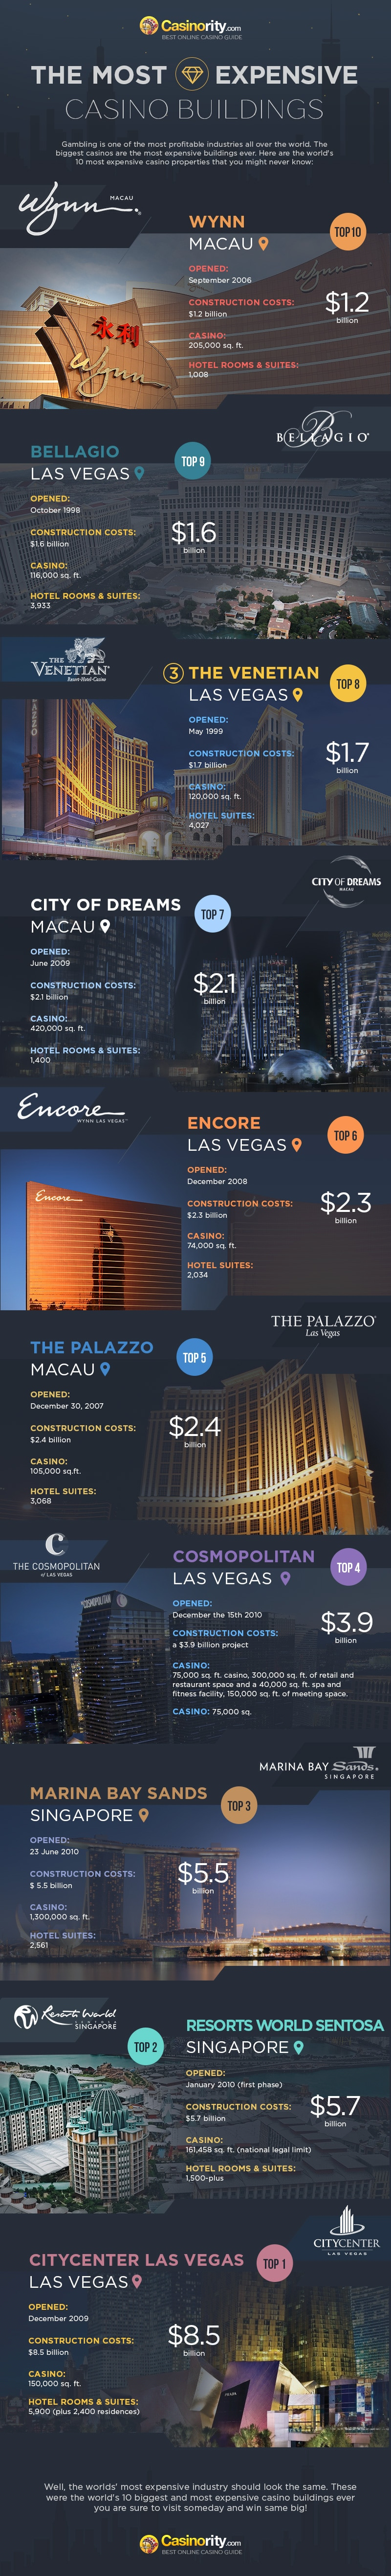 Top 10 Most Expensive Casino Buildings In The World [Infographic]